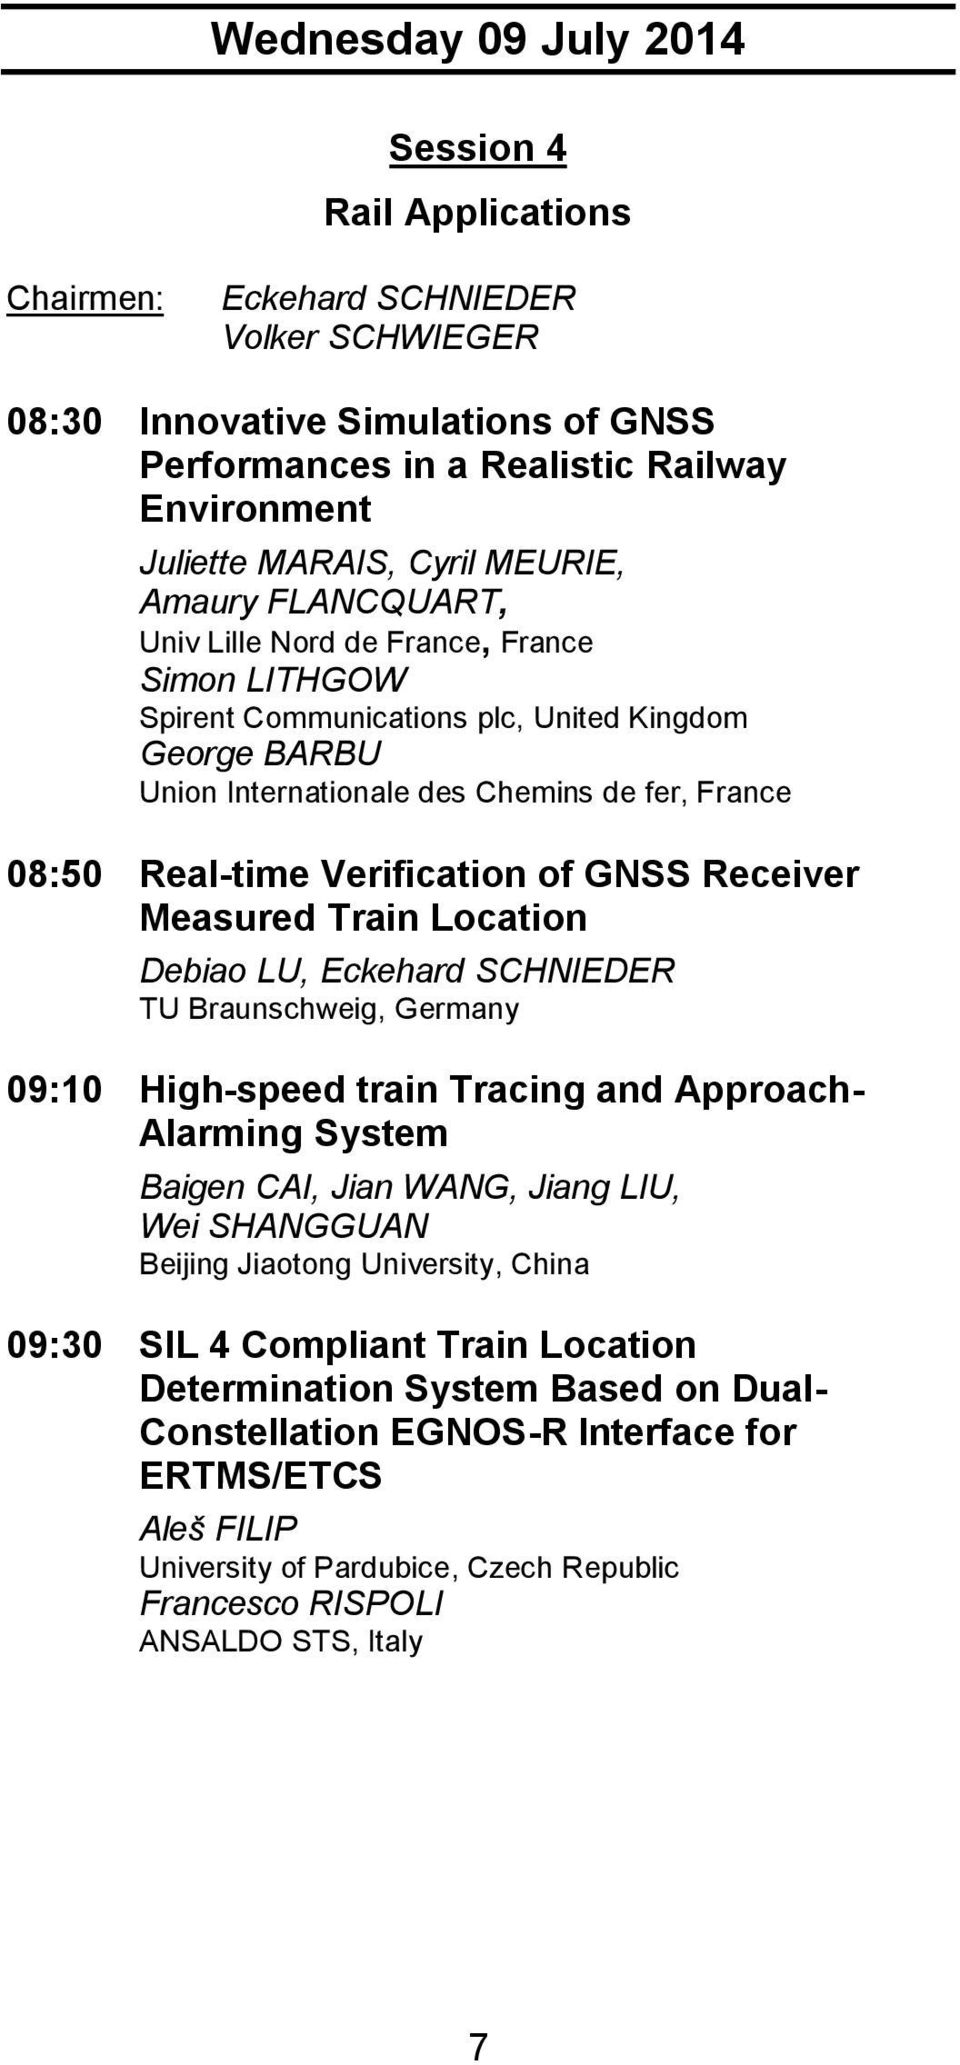 Real-time Verification of GNSS Receiver Measured Train Location Debiao LU, Eckehard SCHNIEDER TU Braunschweig, Germany 09:10 High-speed train Tracing and Approach- Alarming System Baigen CAI, Jian